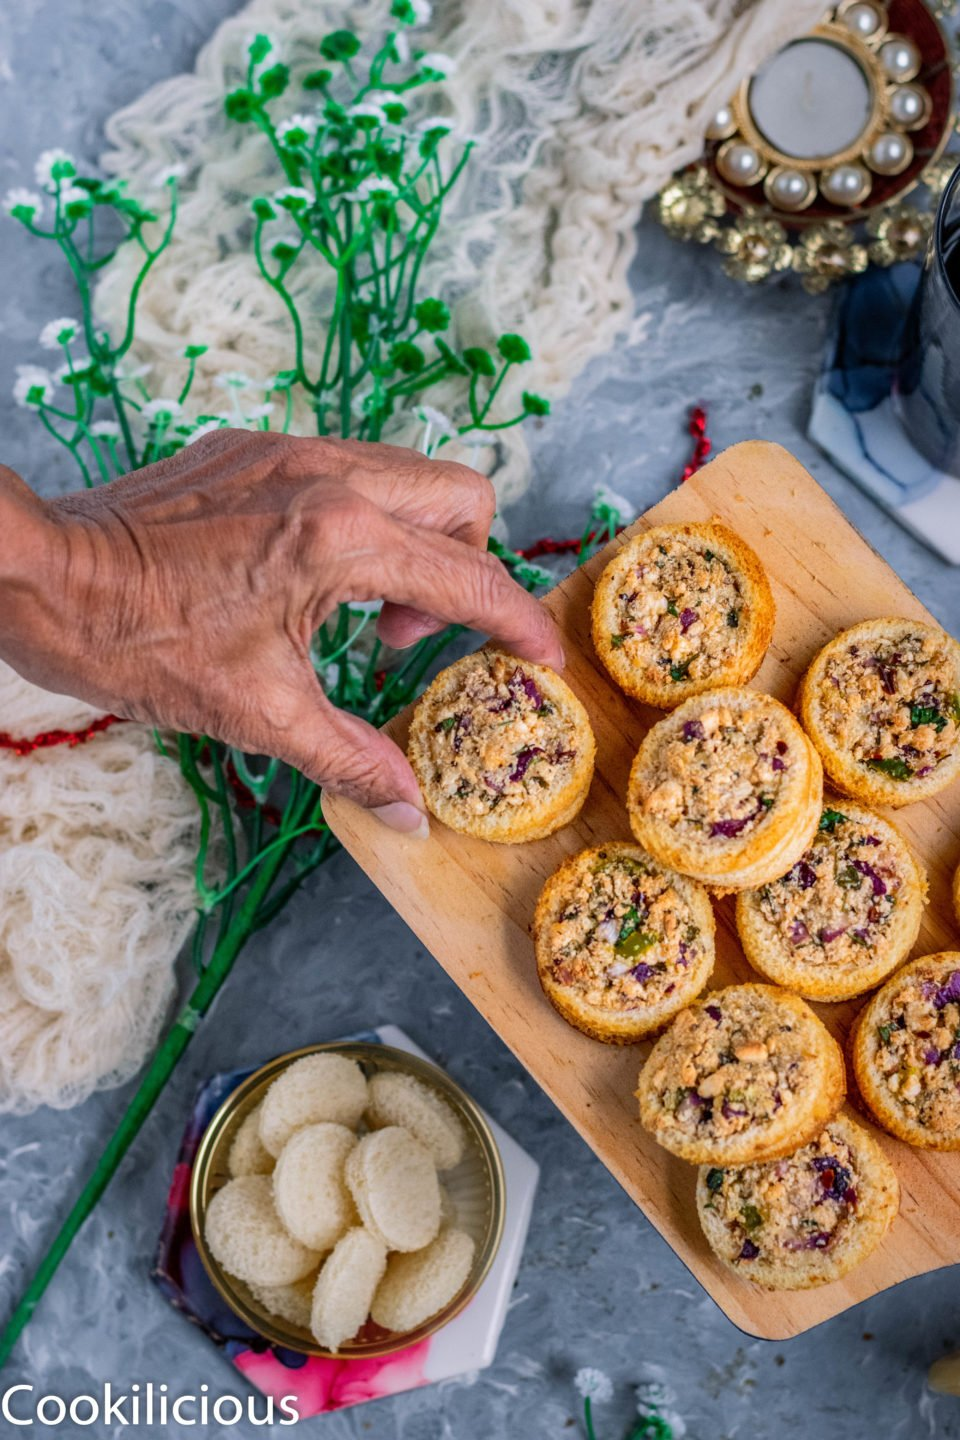 a hand reaching out to a pick up one Baked Cheese Stuffed Bread Ring from a wooden tray